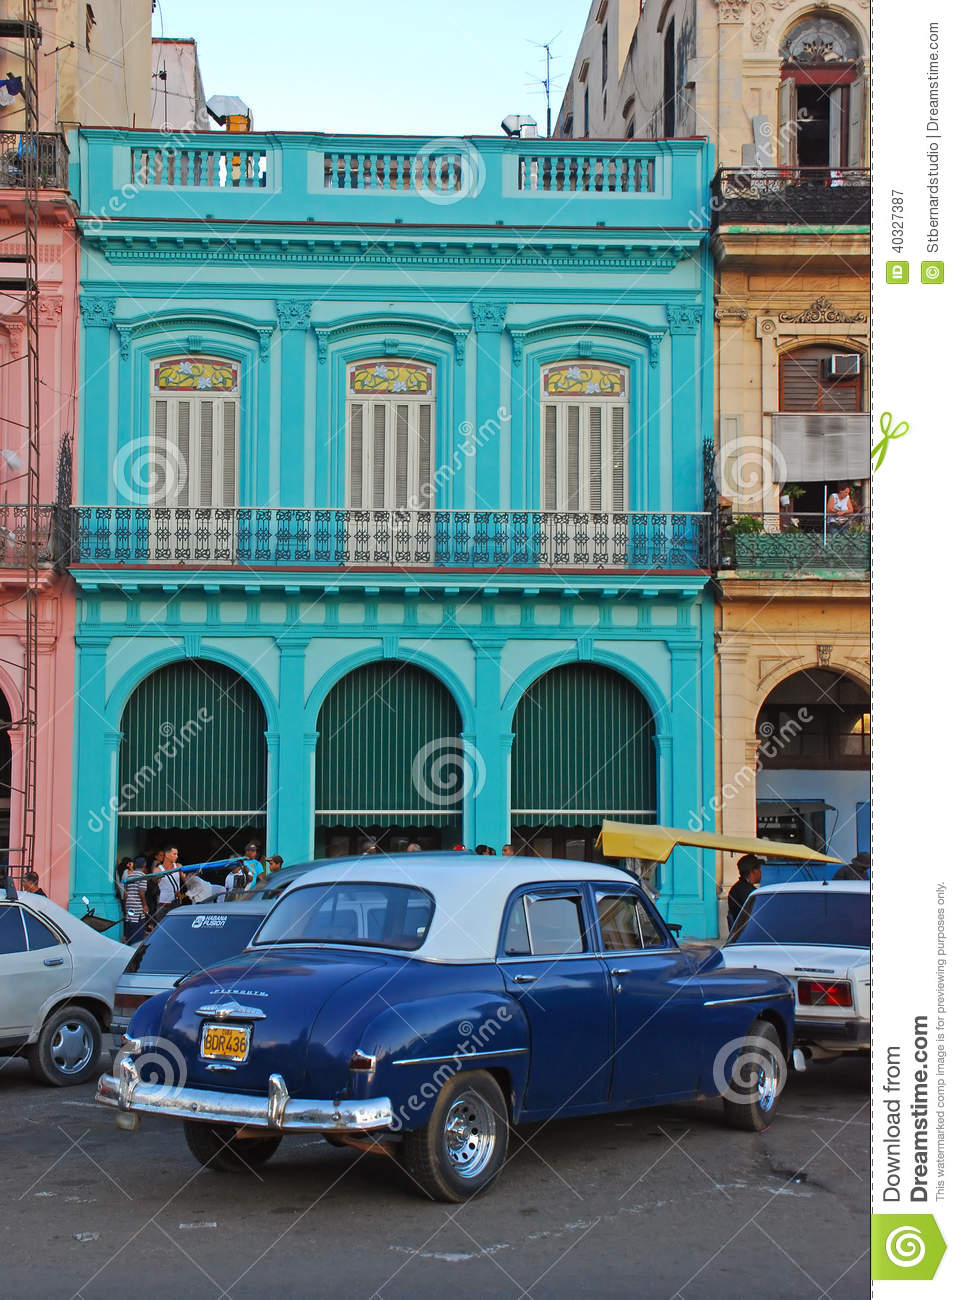 Old Blue Plymouth Car In Front Of Colourful Building In